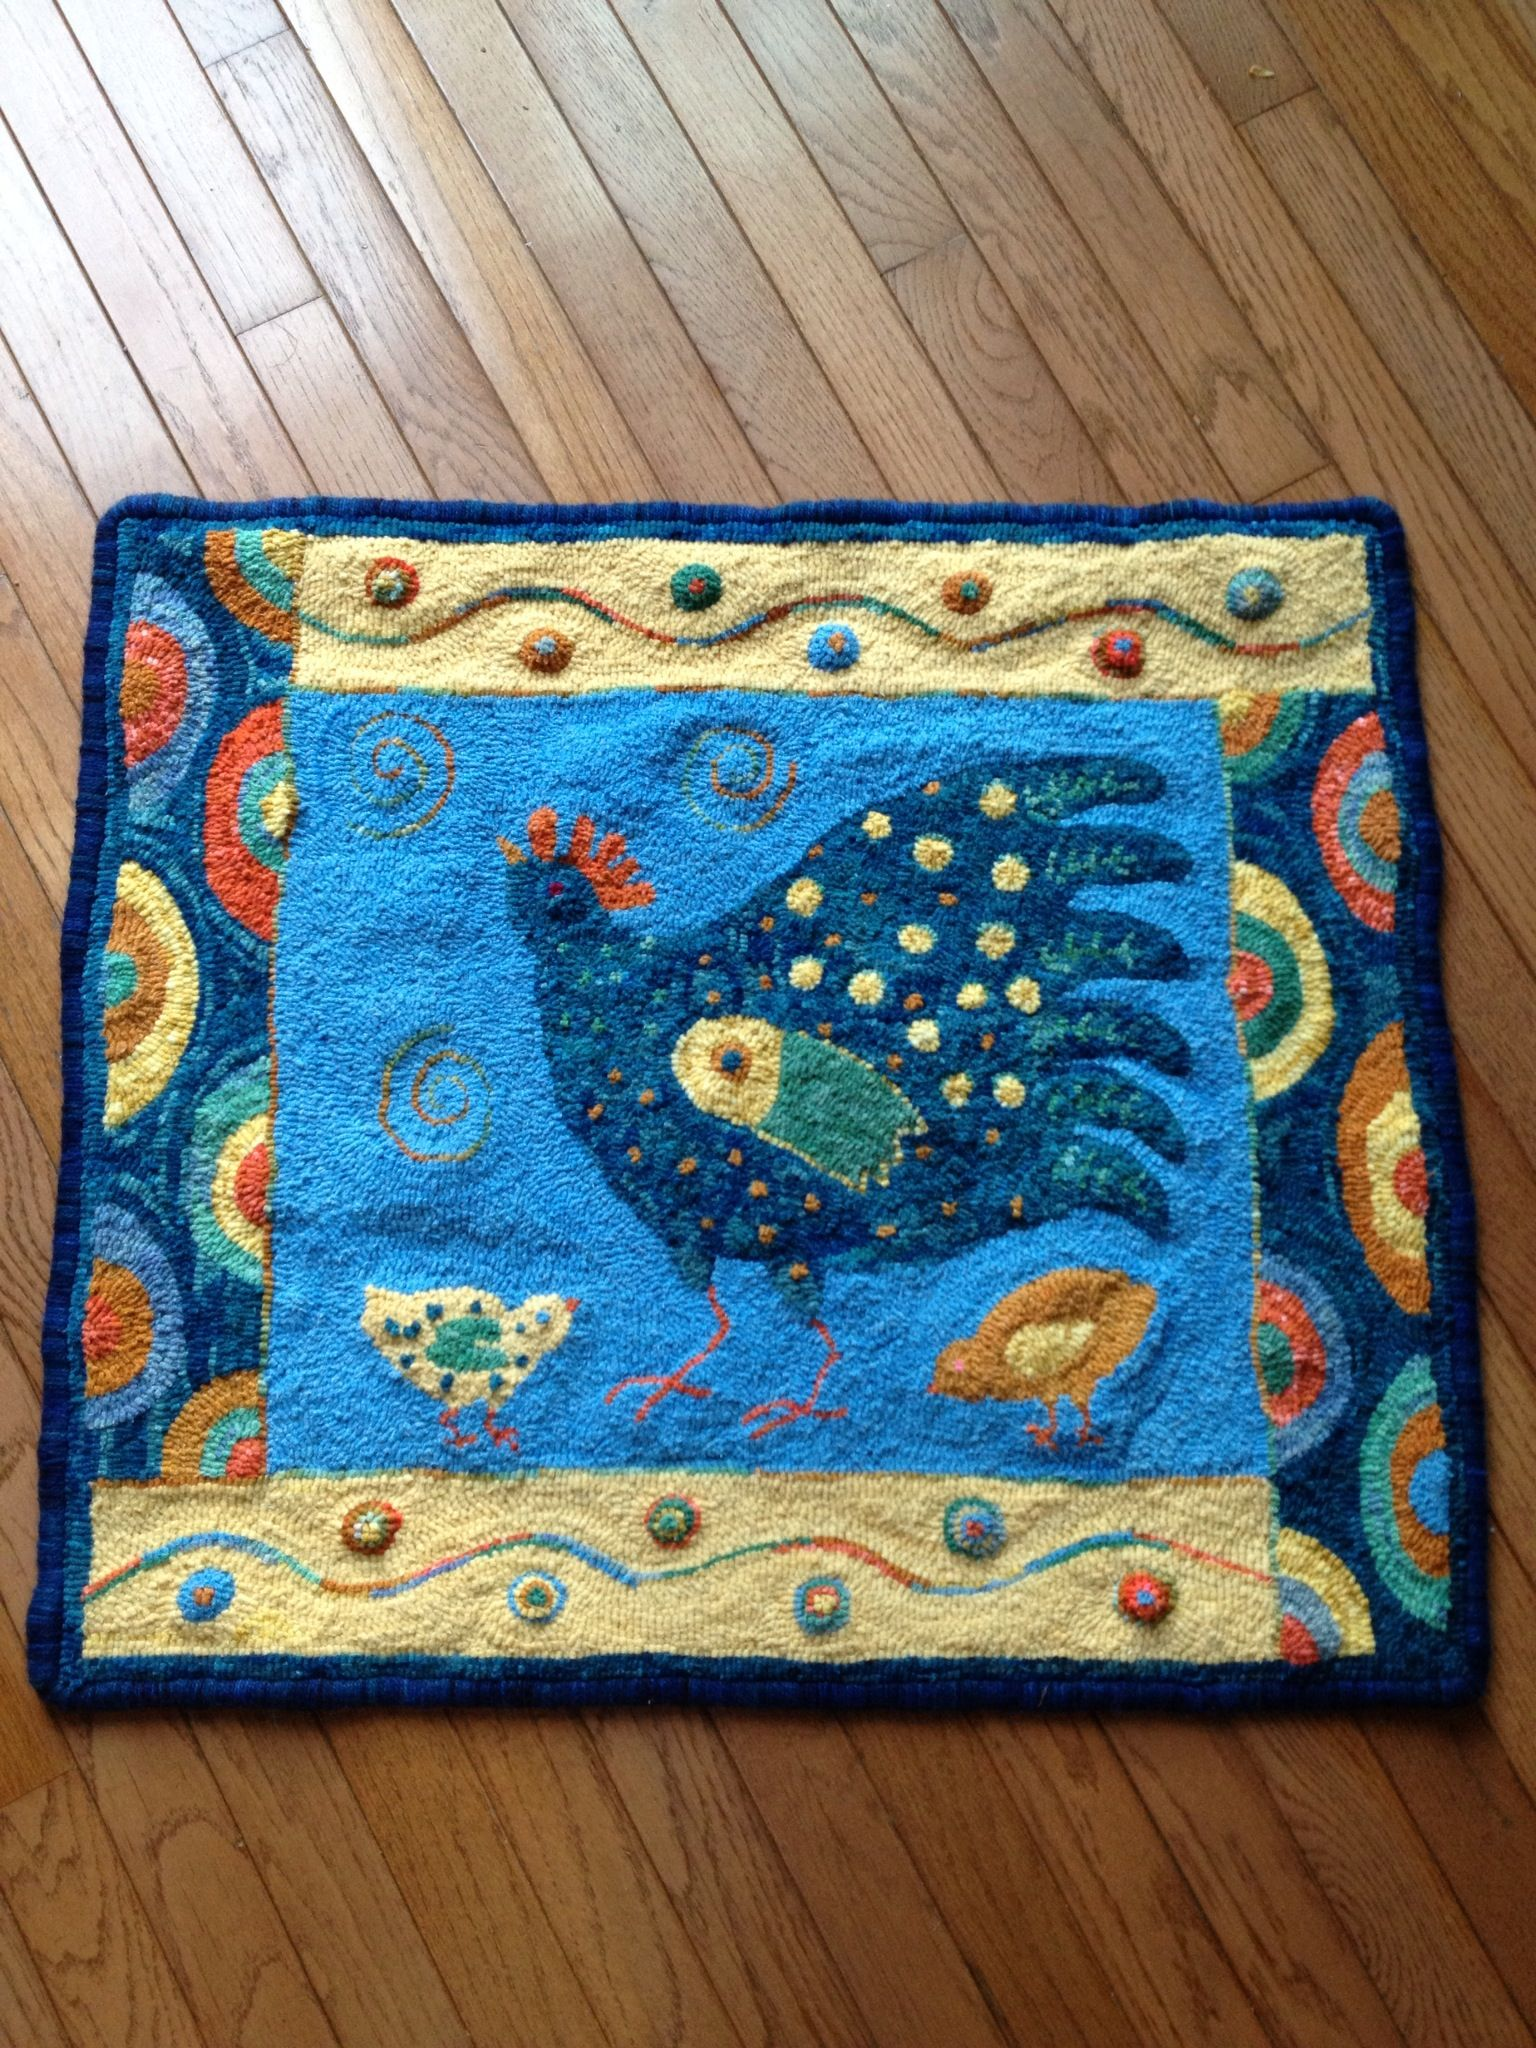 Margaret Shaw pattern, Hen & Chicks. I call it my French Provincial Hen. Completed 5/20/13.